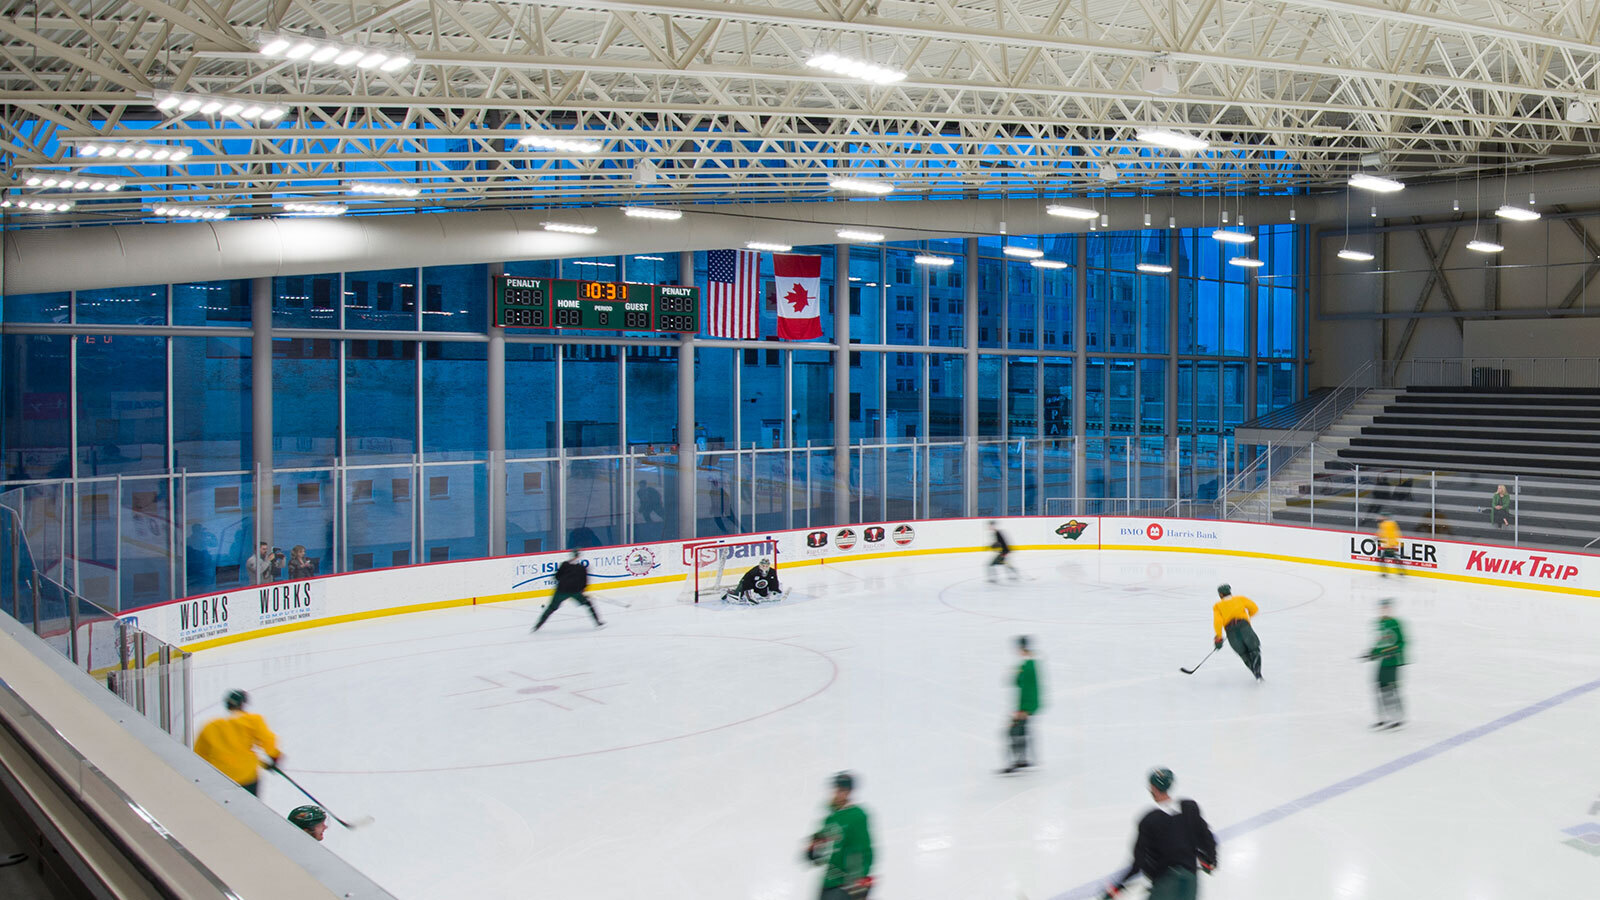 SageGlass provides different tint levels to accommodate the varying needs for solar control throughout the day, depending on sky conditions and the position of the sun. During the day, TRIA Rink managers can tint SageGlass to keep Minnesota Wild players comfortable during practice and free from glare. At night they have the option of setting the glass to clear, offering an exhilarating recreational experience for local youth hockey teams who use the facility.